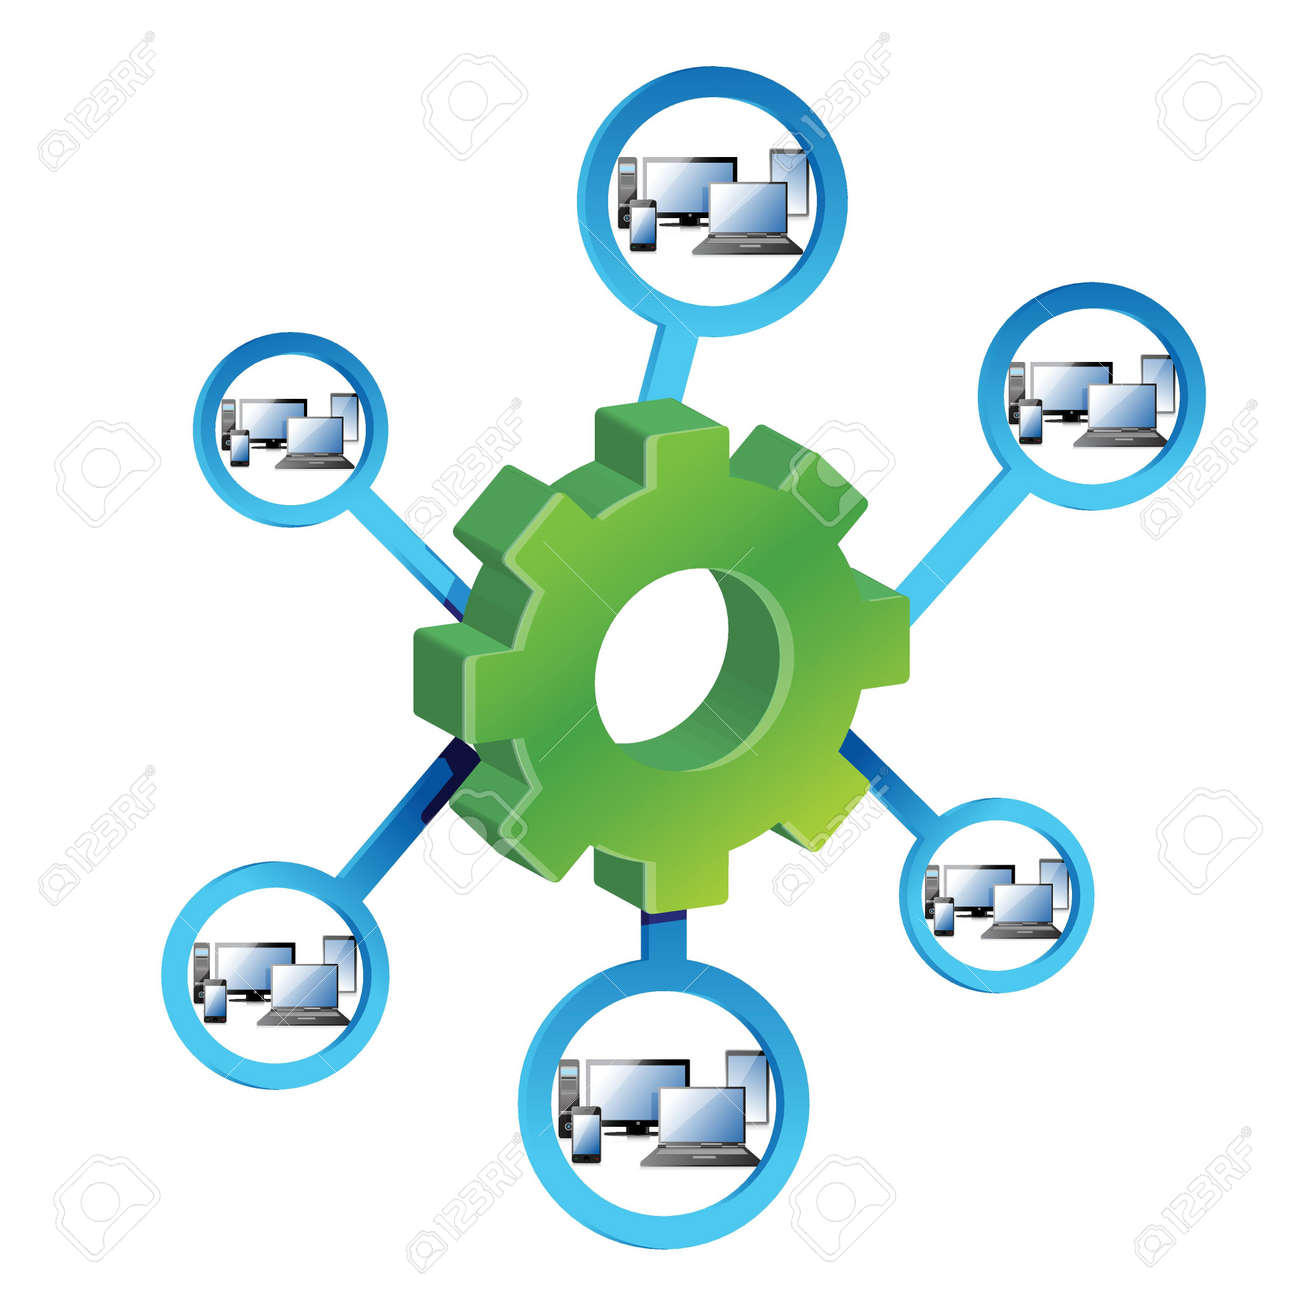 Network Diagram and gears illustration design over a white background. Stock Vector - 19706271